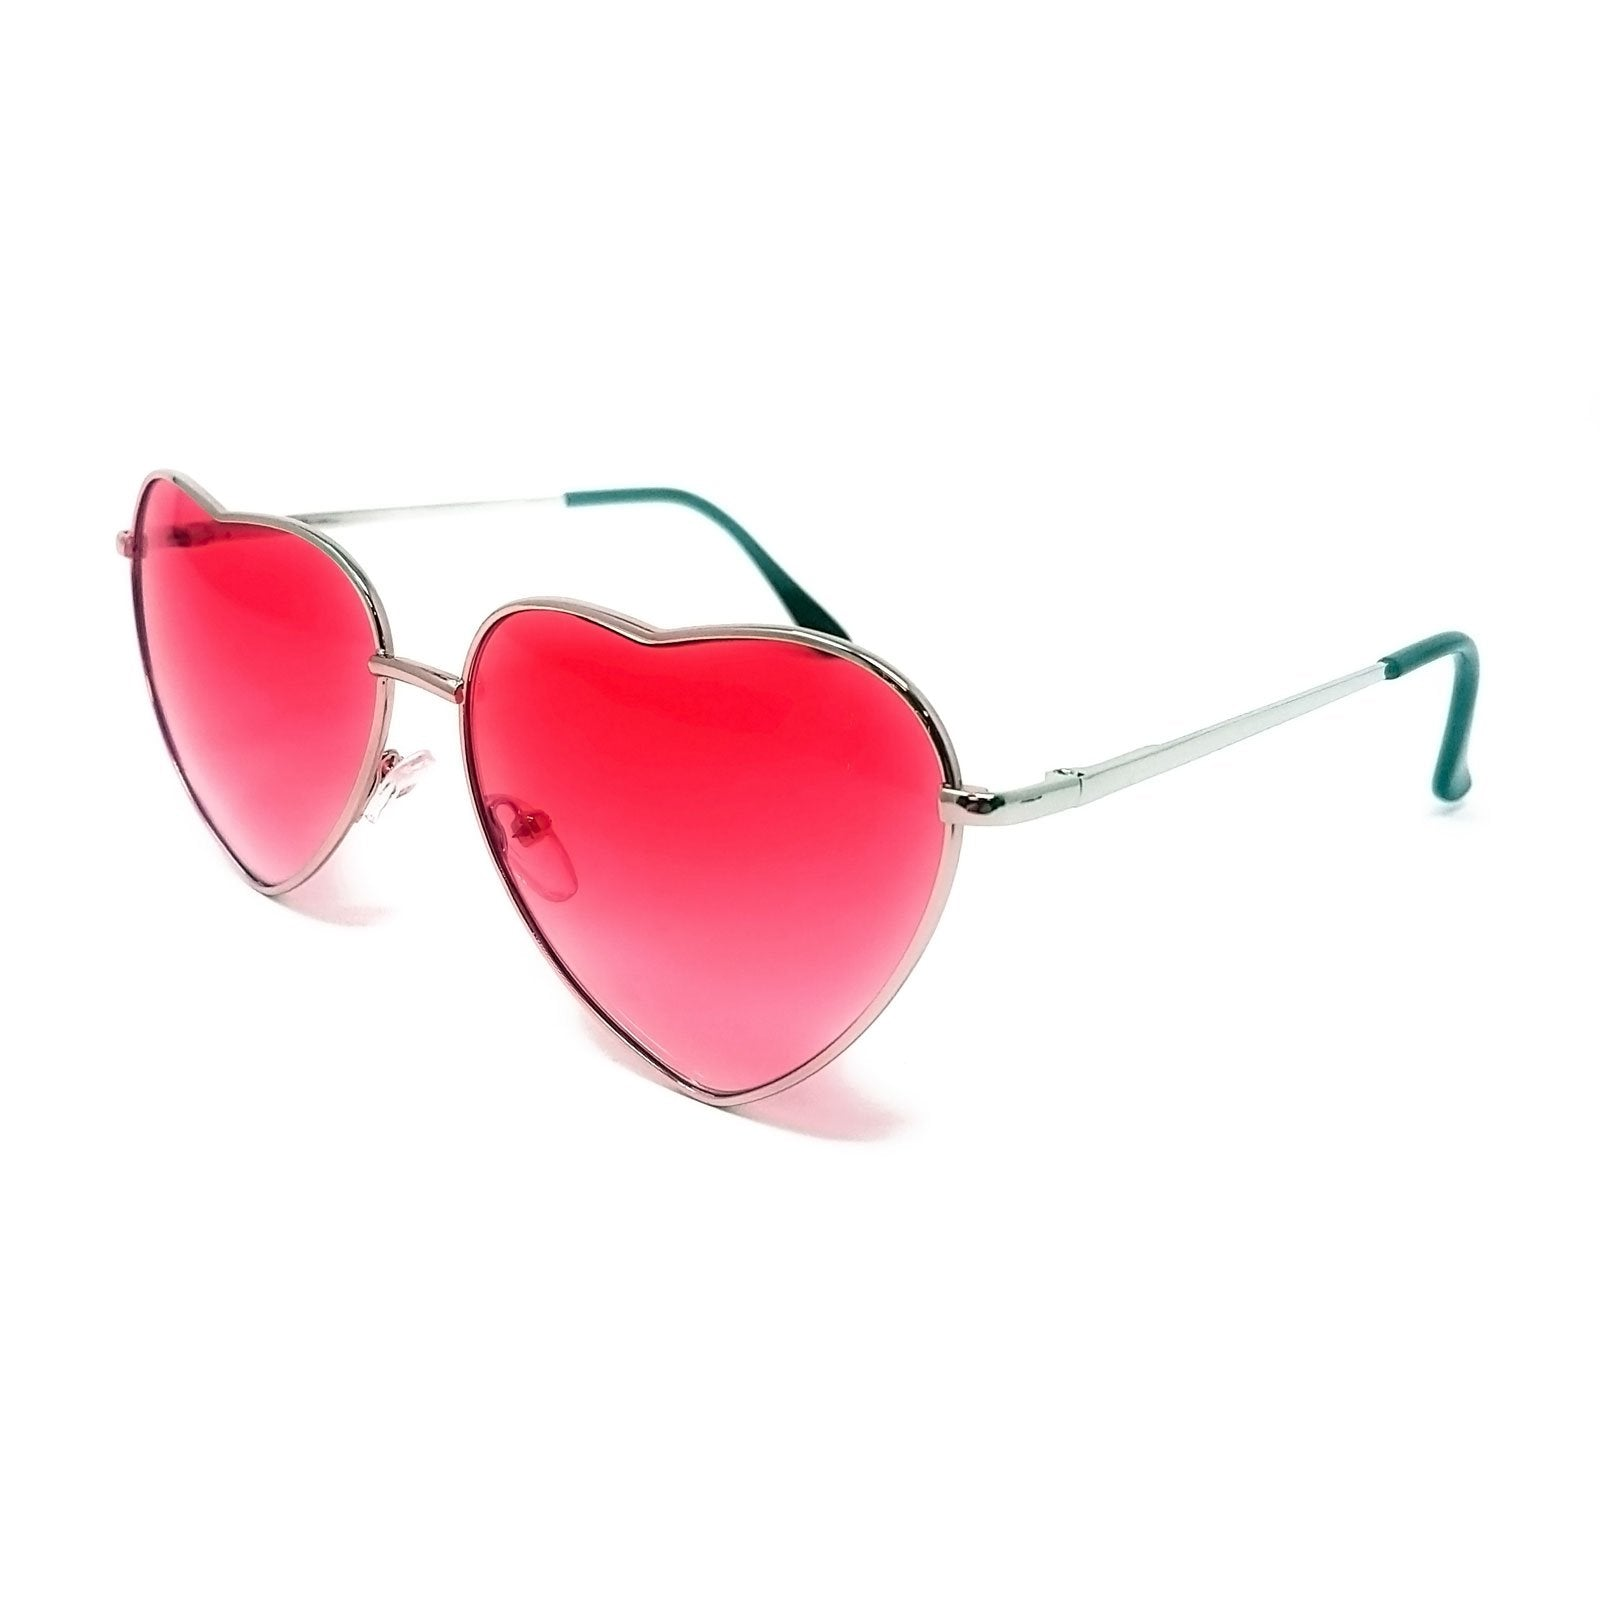 Wholesale Heart Shape Sunglasses - Silver Frame, Hot Pink Gradient Lens